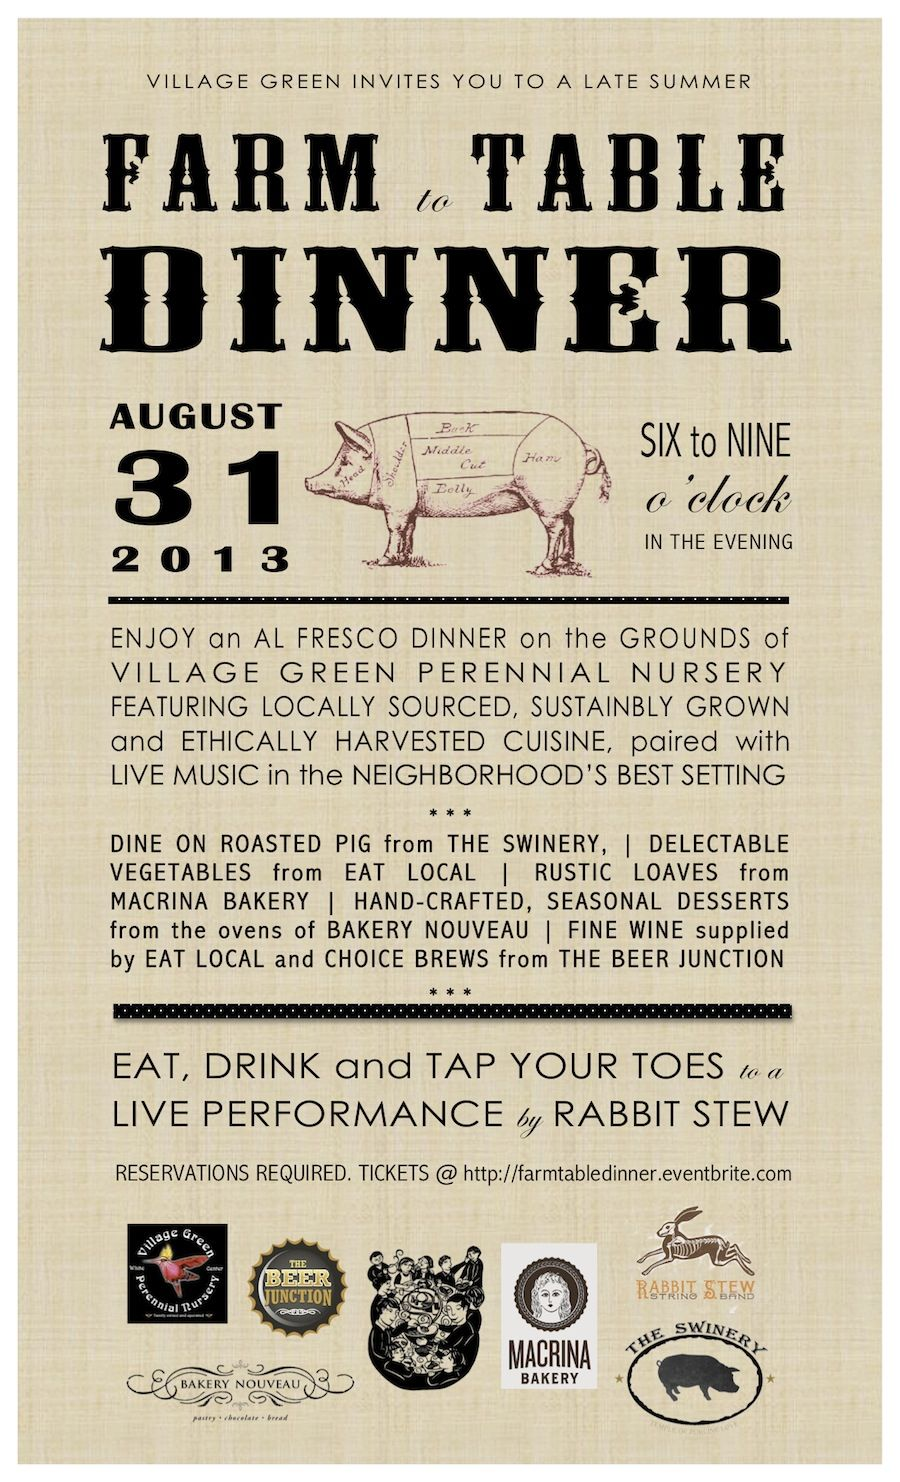 farm to table dinner menu invitation layout business ideas farm to table dinner menu invitation layout